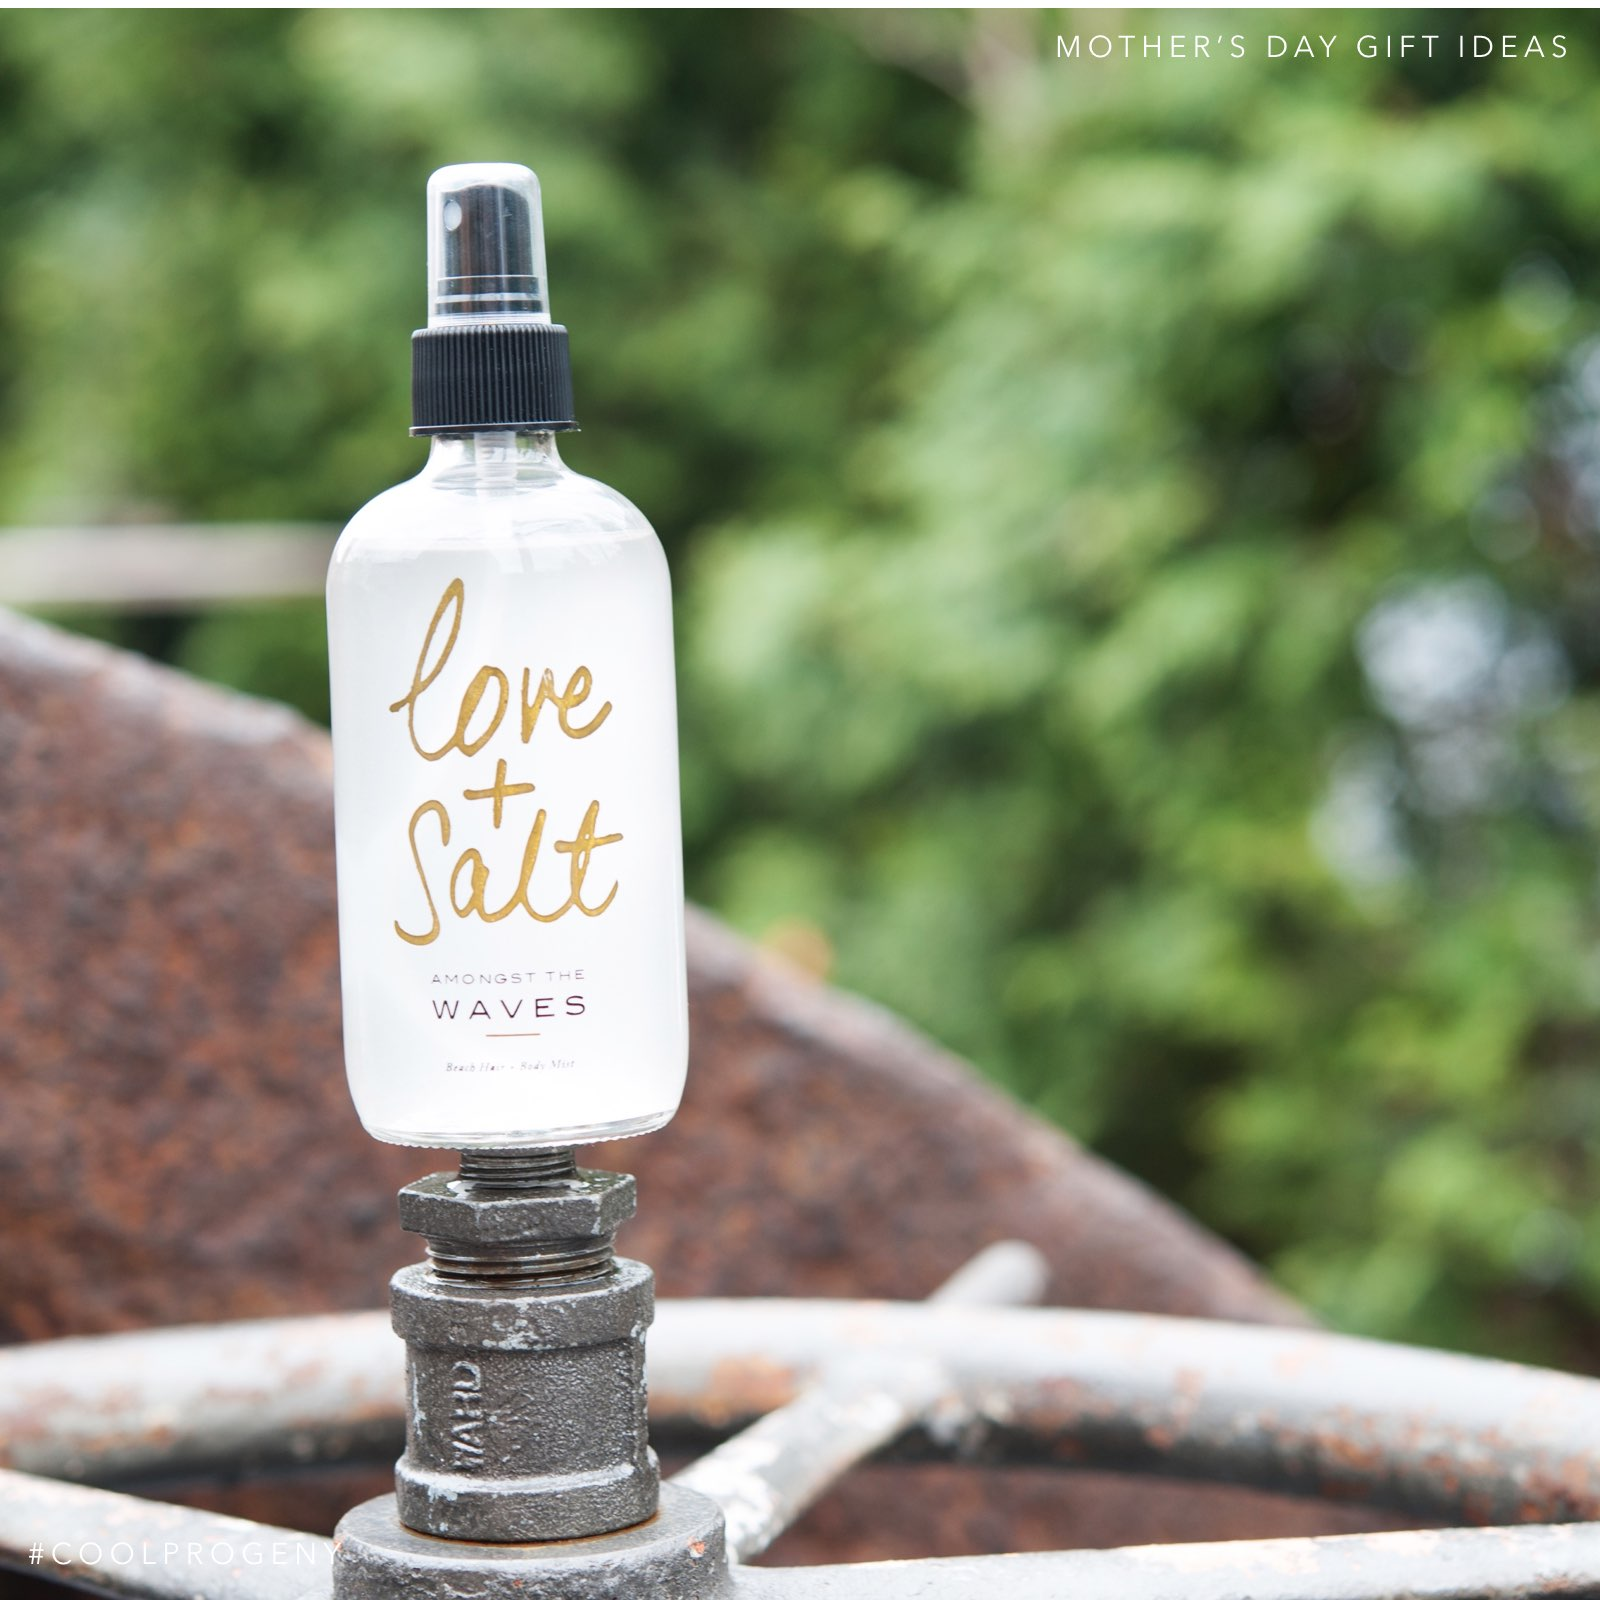 Mother's Day Gift Idea - (cool) progeny - Love & Salt Body Mist, available at Becket Hitch